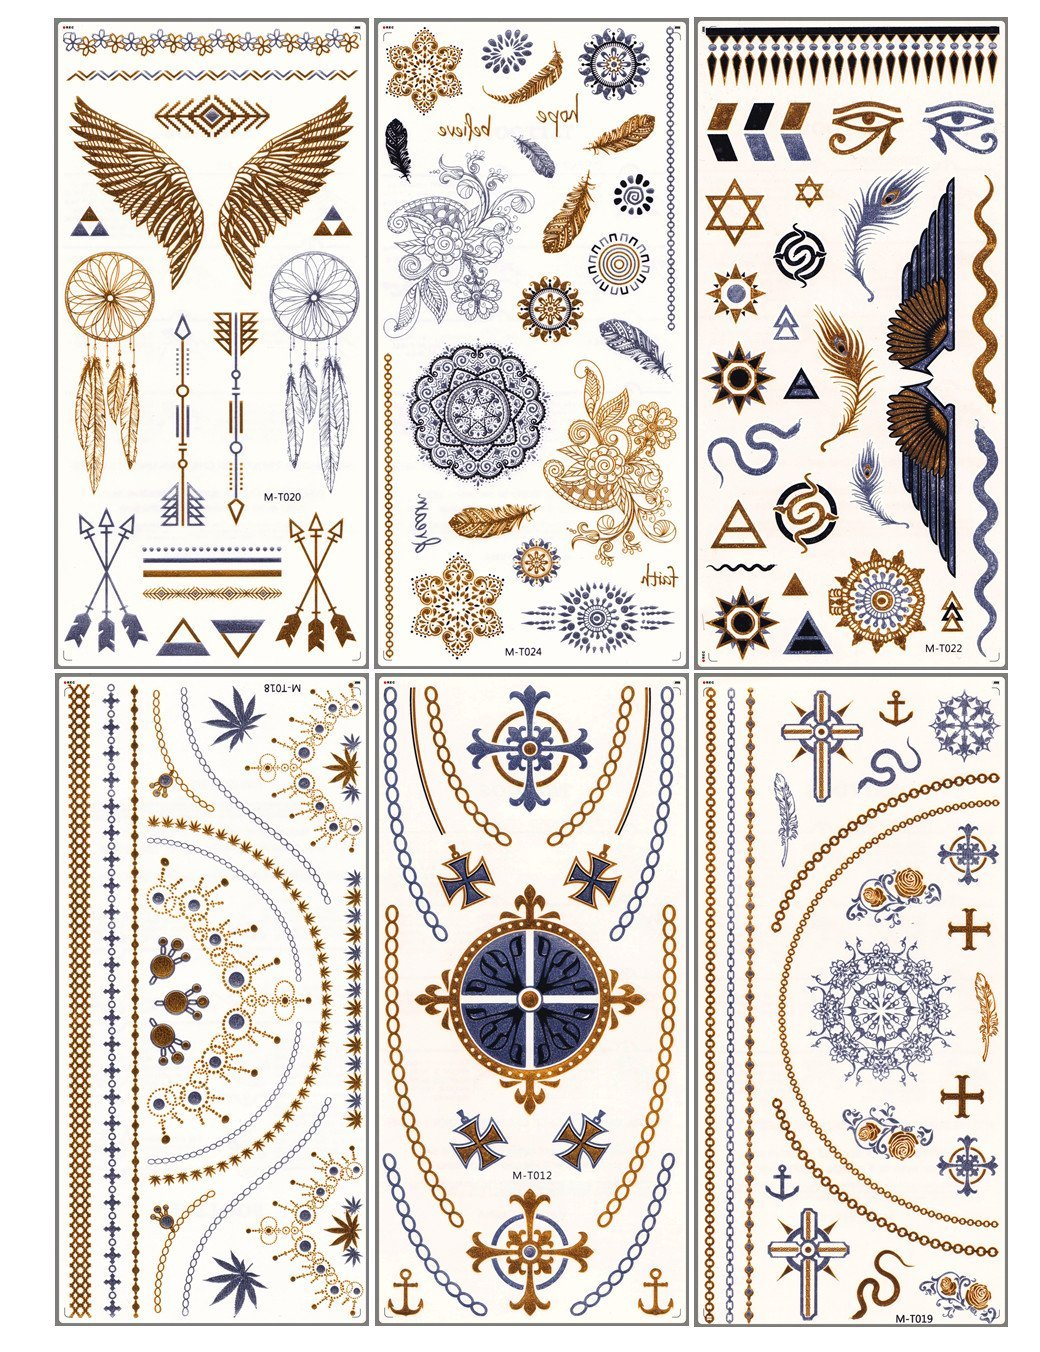 2dd55dd1a Get Quotations · Dalin 6 Sheets Gold Silver and Black Body Jewelry Temporary  Metallic Tattoos, Angel Wings,